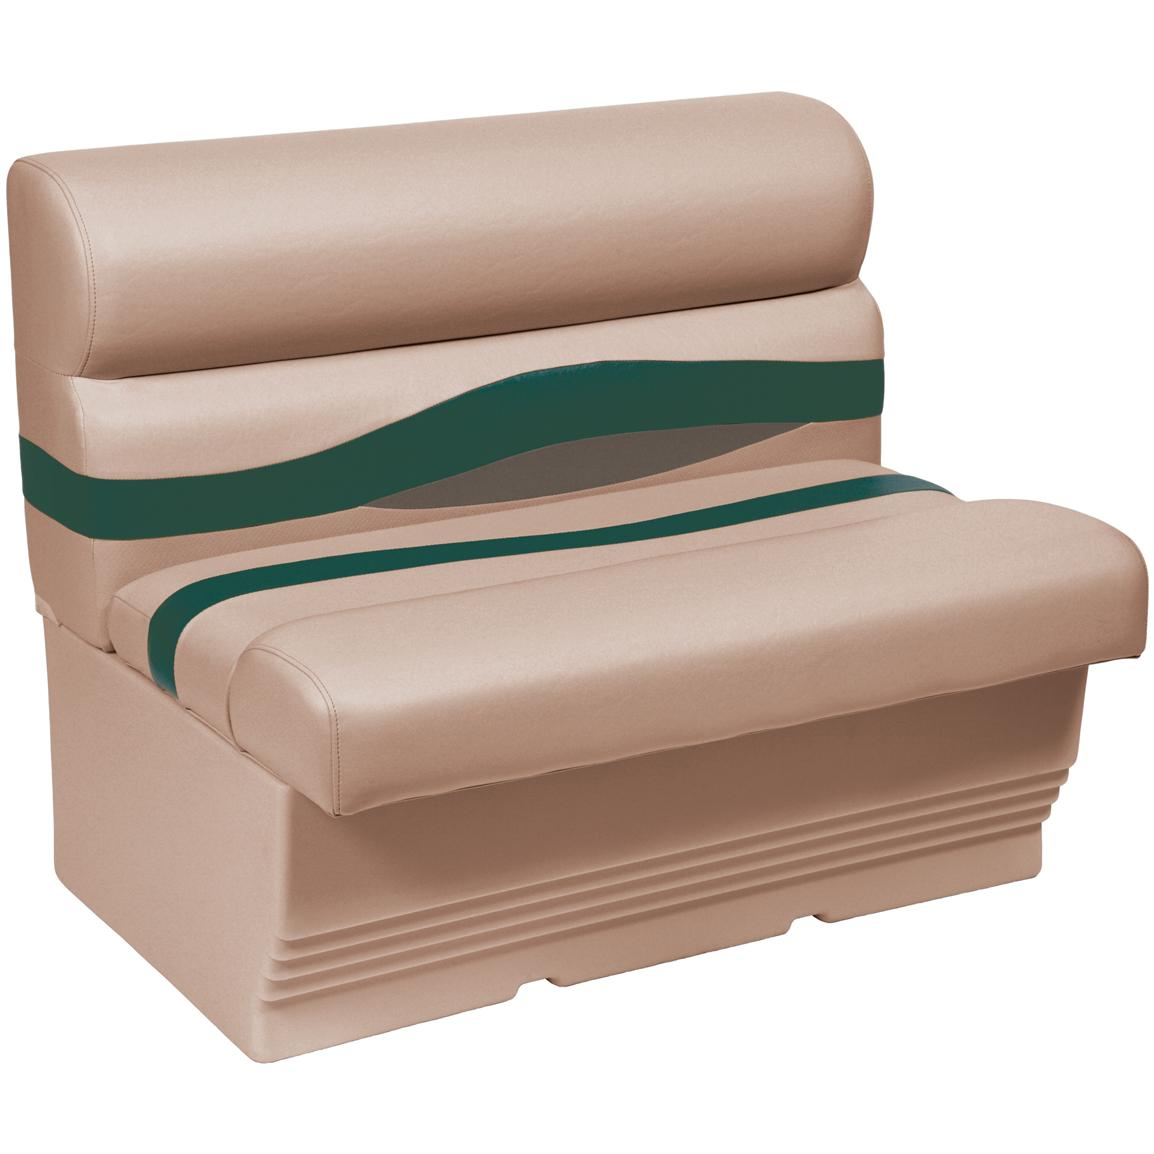 Wise® Premier 1100 Series 36 inch Pontoon Bench Seat, Color F